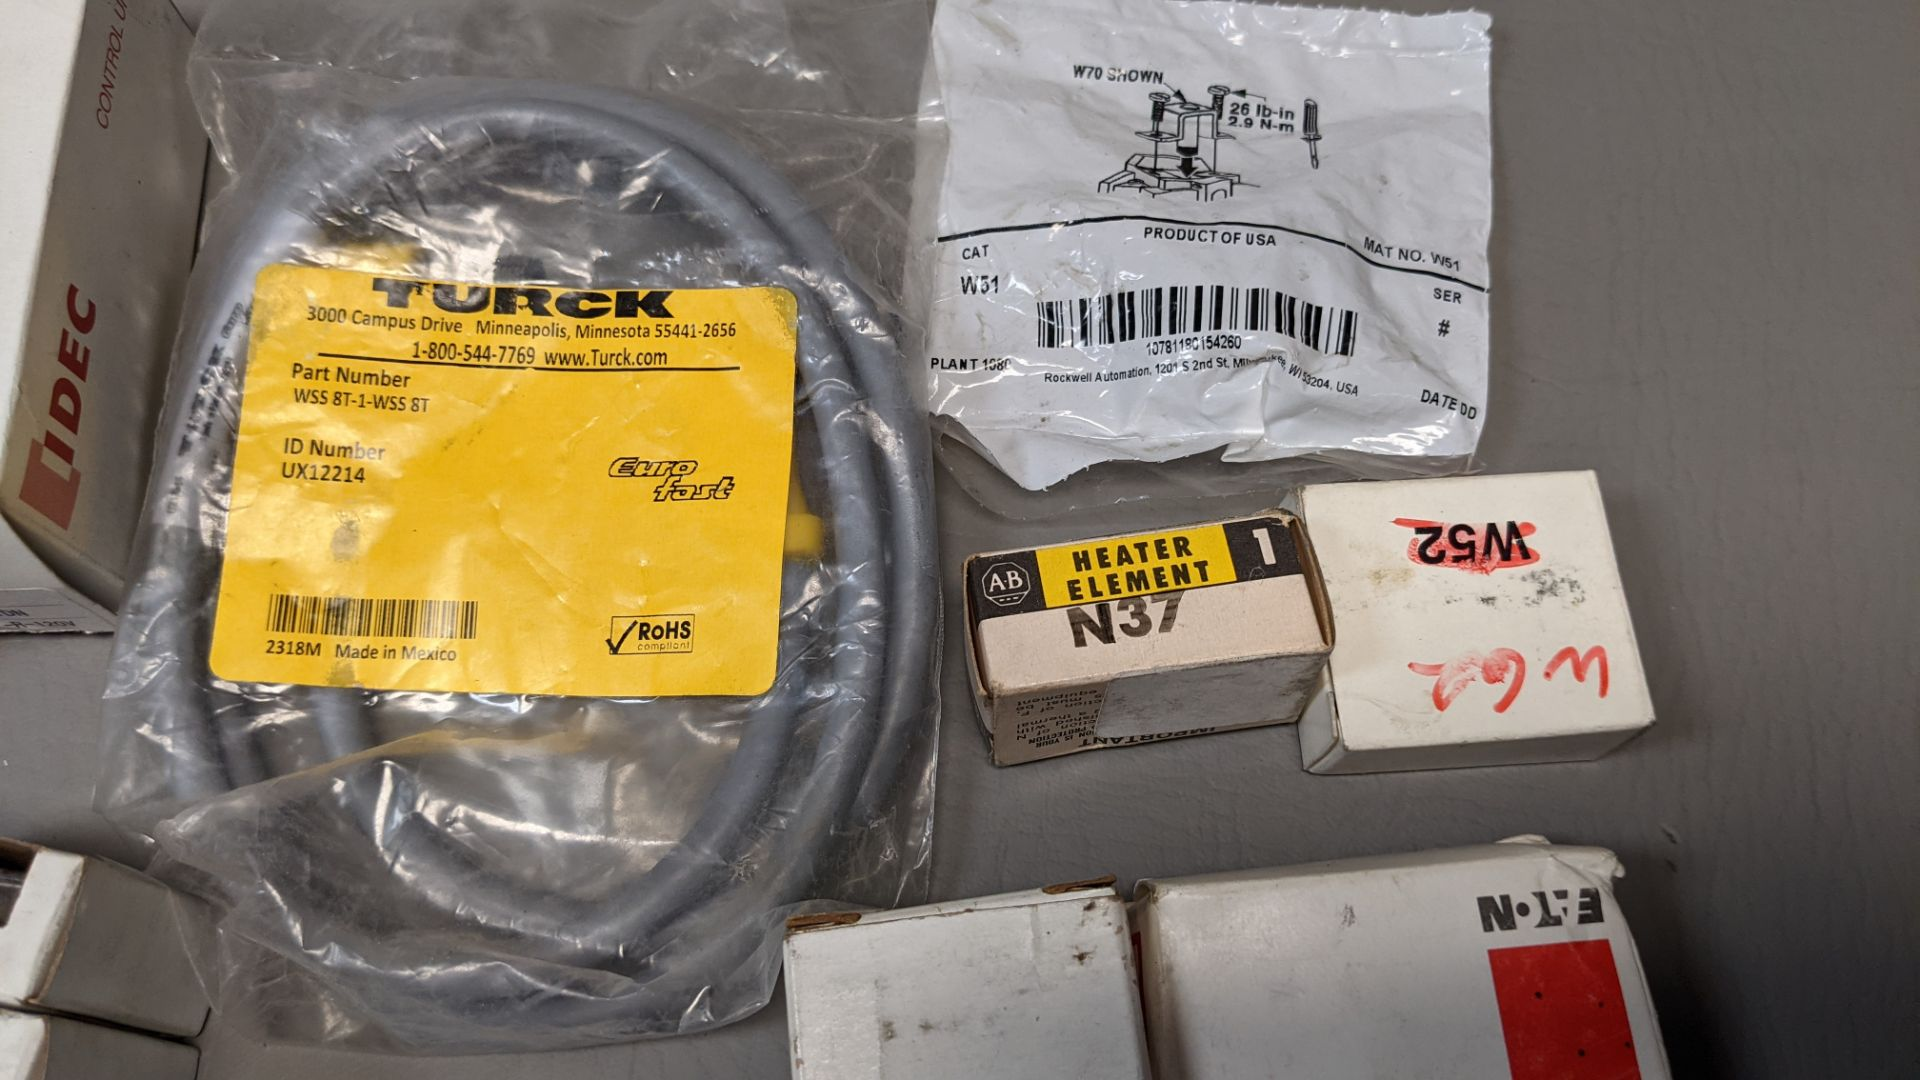 LOT OF NEW MRO PARTS - Image 6 of 6